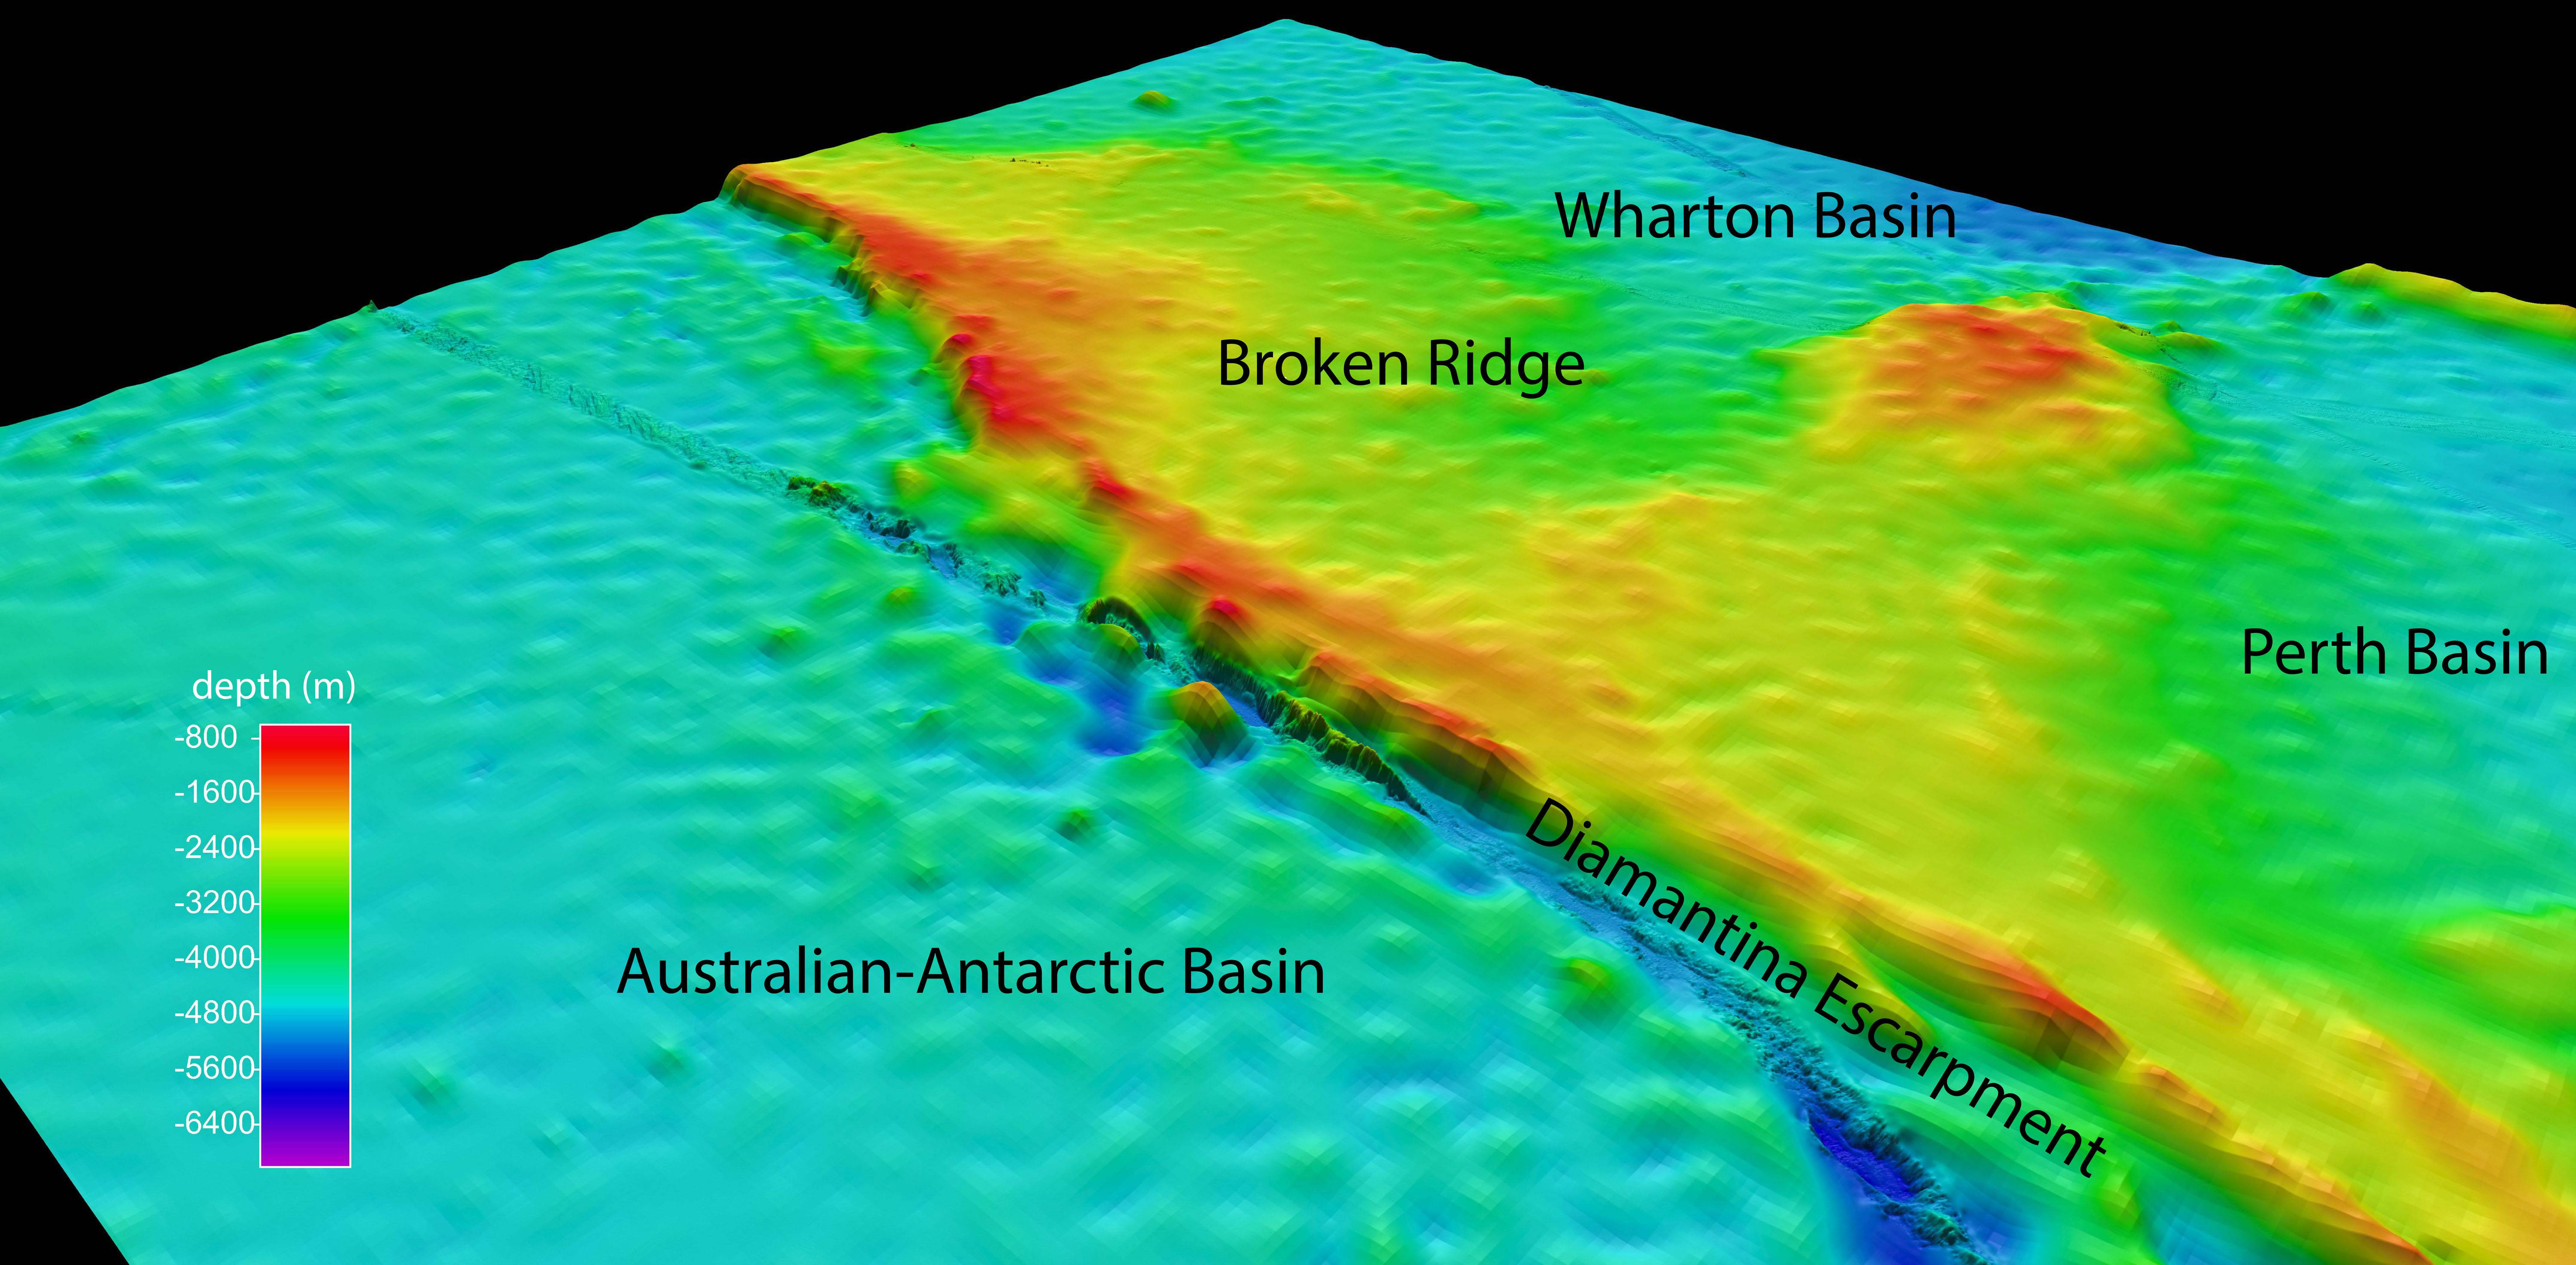 This graphic shows a view of the search area for the missing Malaysian Airlines Flight 370 at Broken Ridge, southeastern Indian Ocean, which shows the Diamantina Escarpment dropping from about 800 yards to over 5,000 yeards in depth.